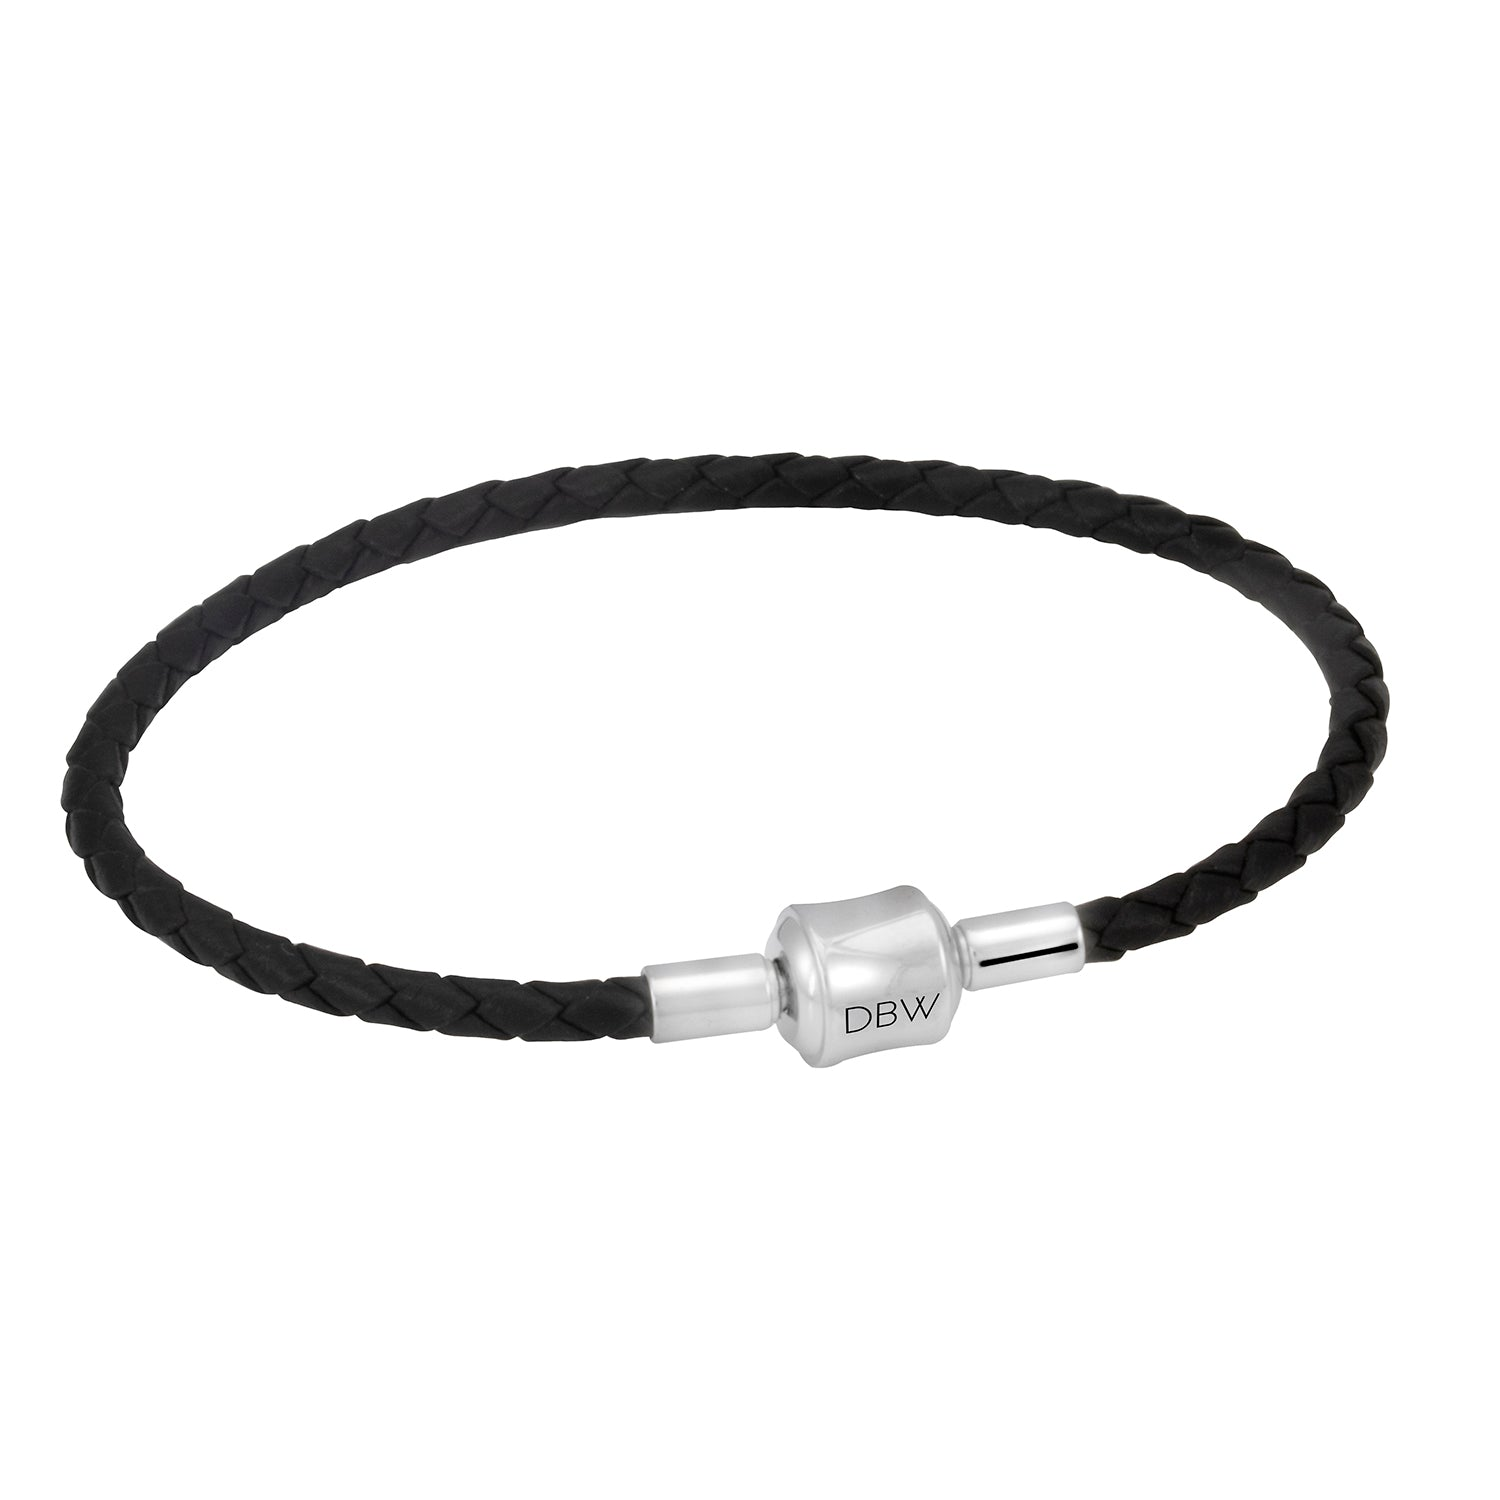 Single Leather Wrap Charm Bracelet in Black